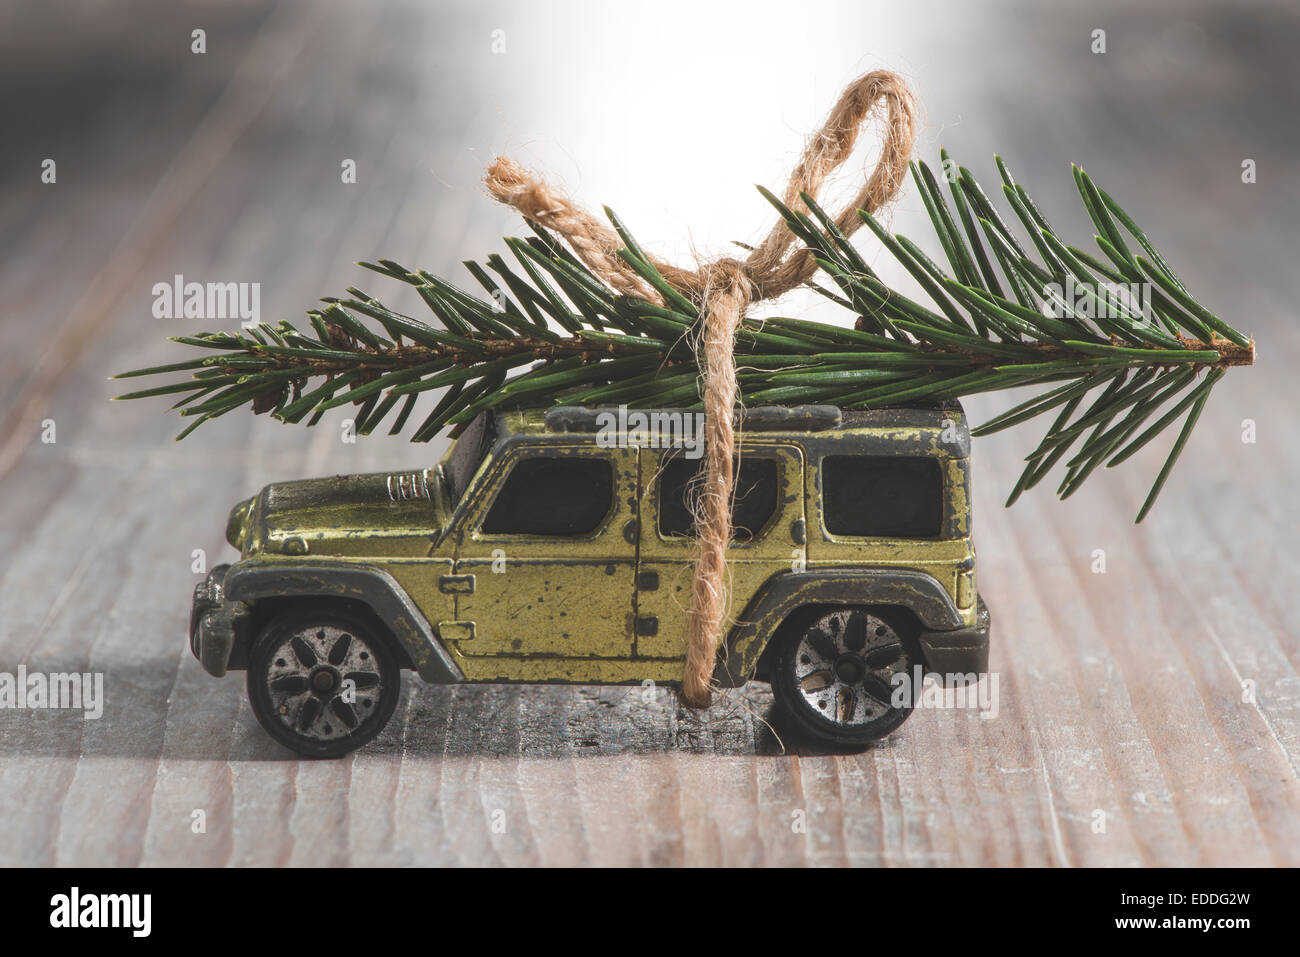 SUV car toy with Christmas tree on roof - Stock Image